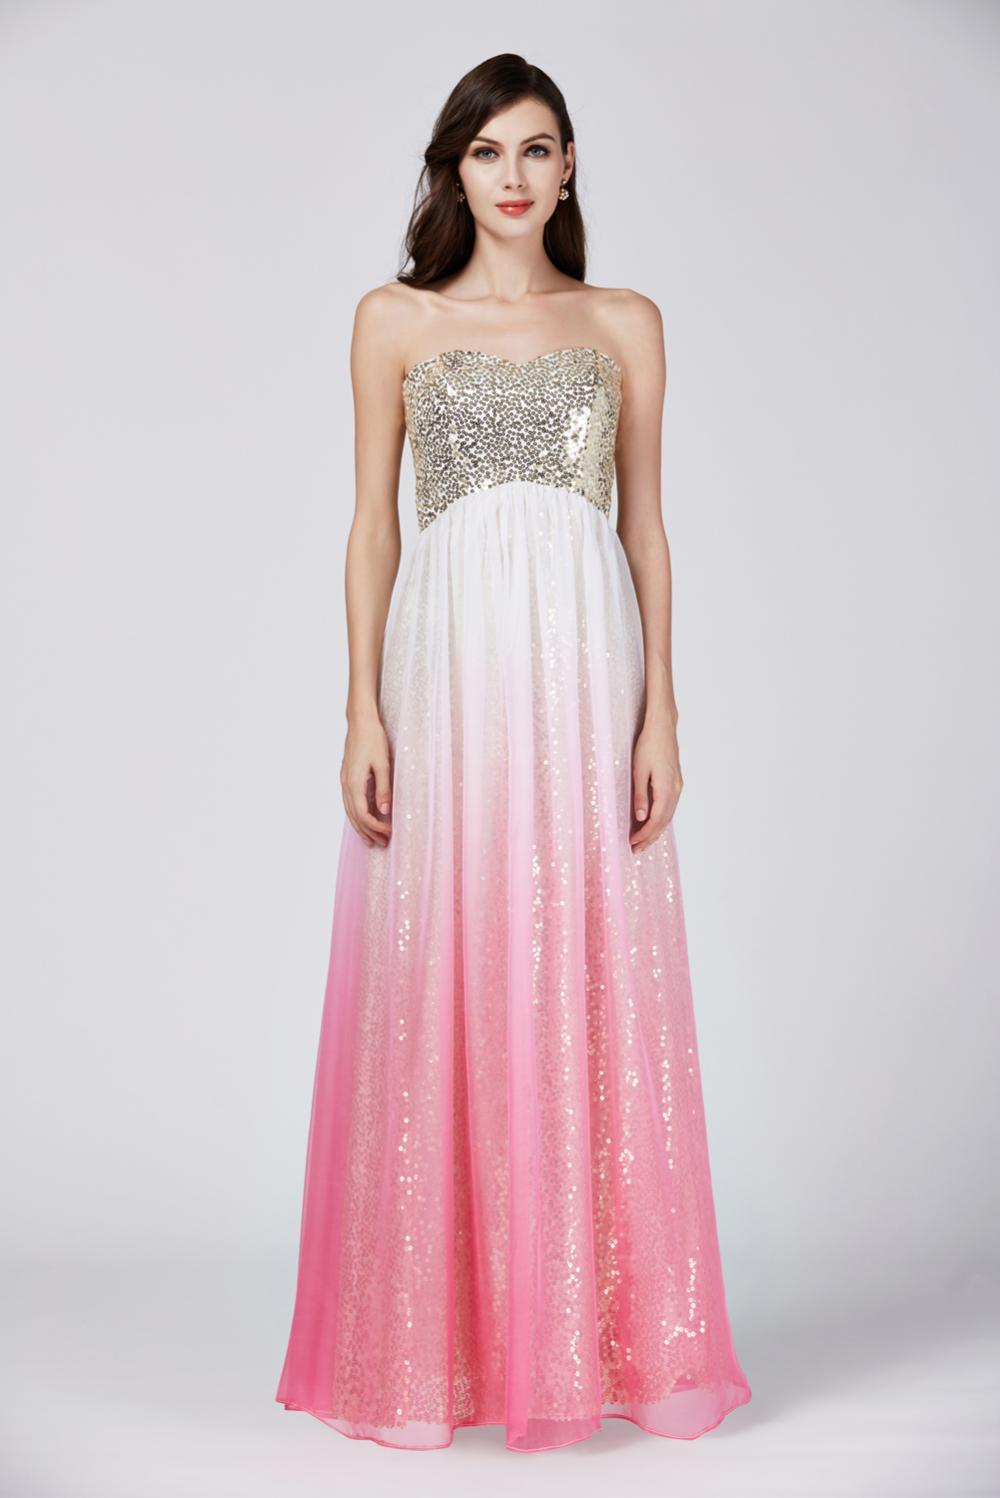 A-Line/Princess Strapless Floor Length Chiffon Prom Dress with Sequins